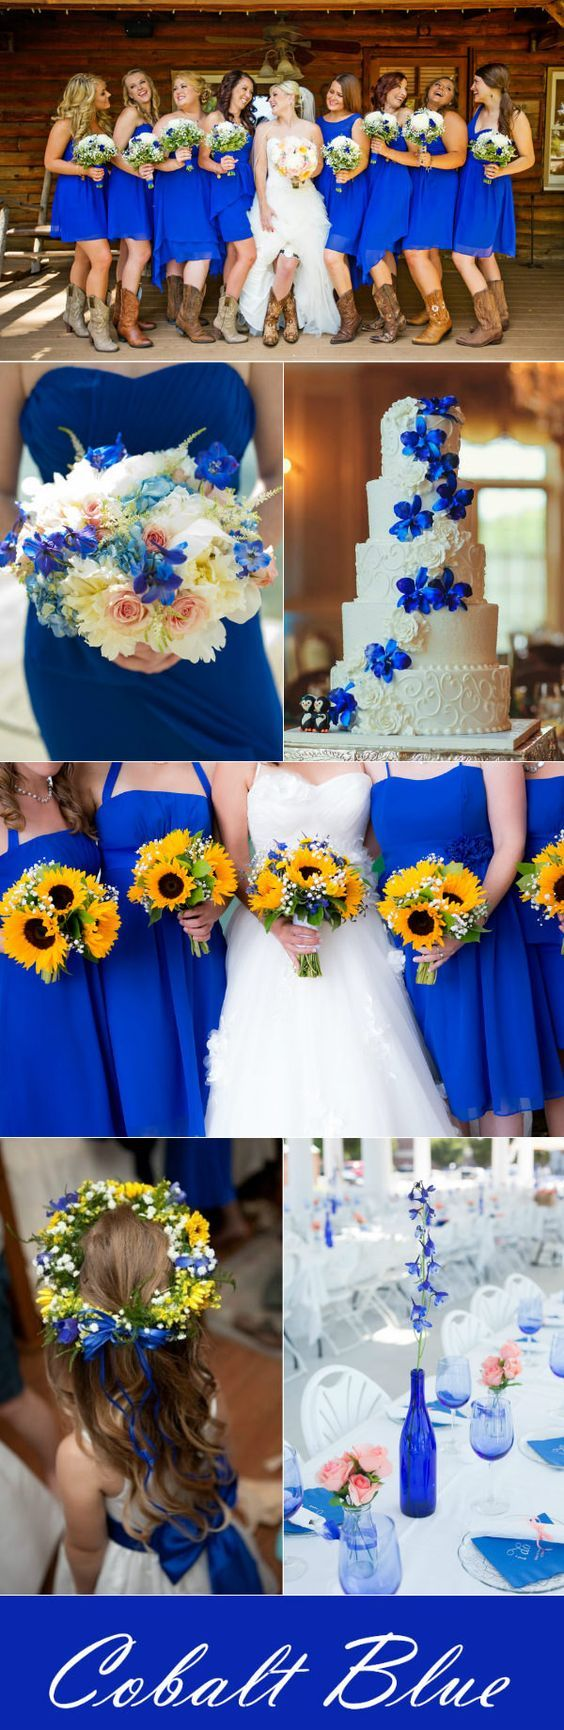 Quilling wedding decorations october 2018  best ideas images on Pinterest  Sunflowers Boyfriends and